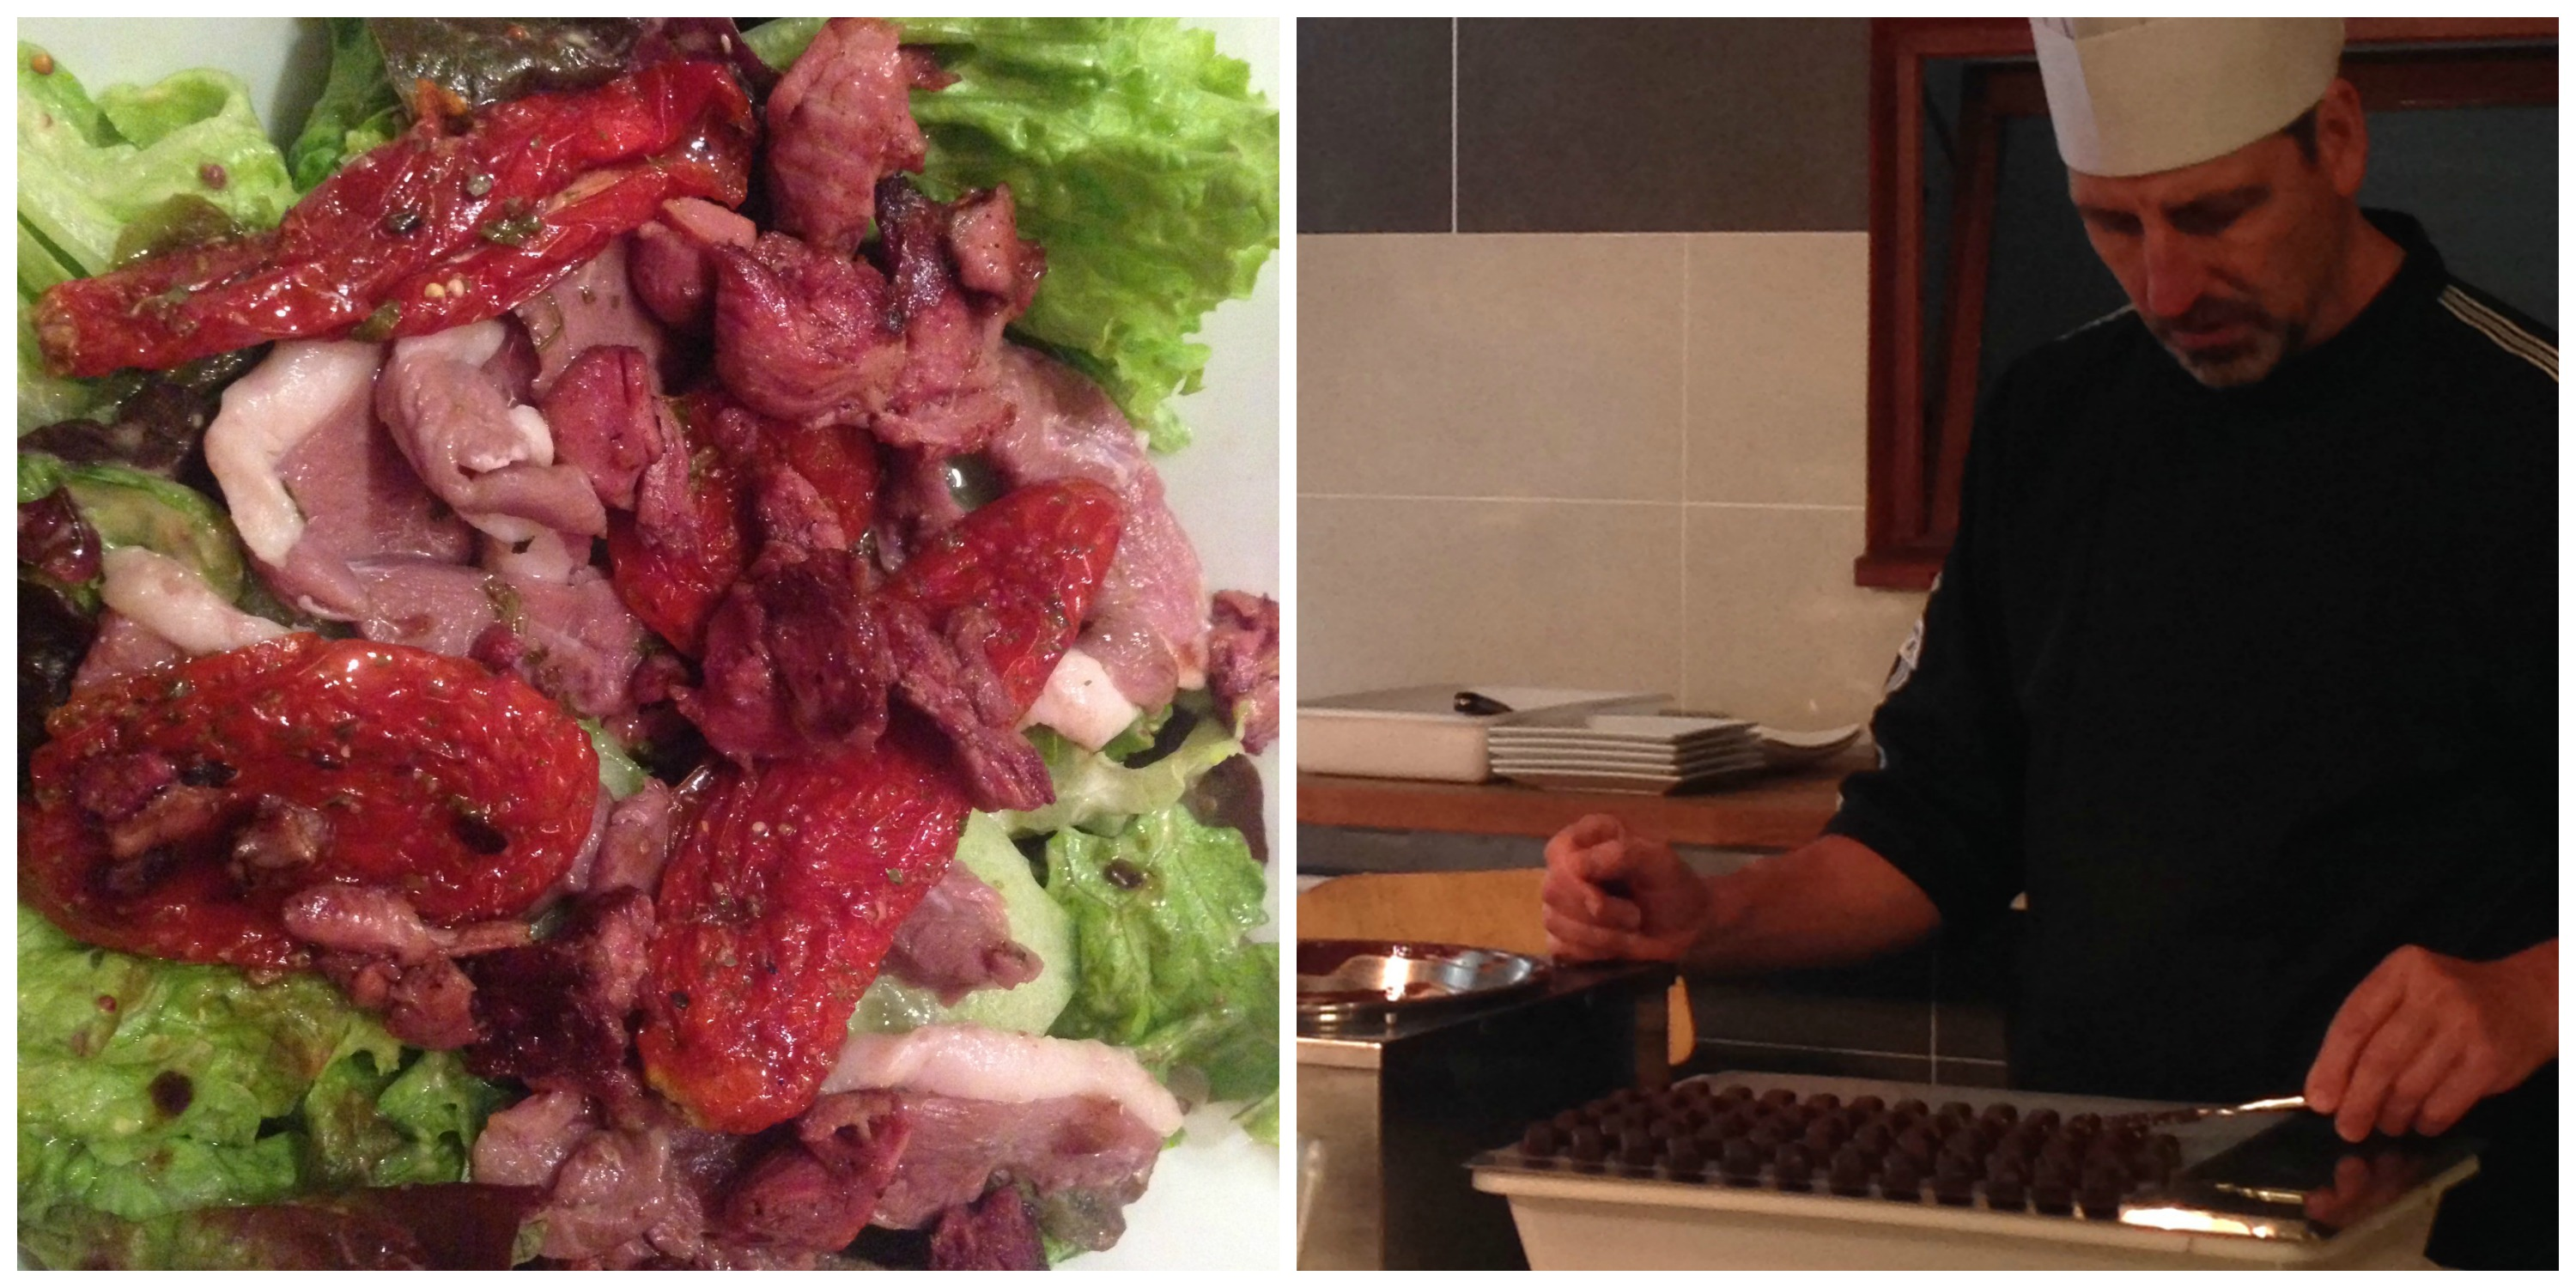 Duck salad at Cafe de la Place & Chocolate-Making from Guillaume Daix